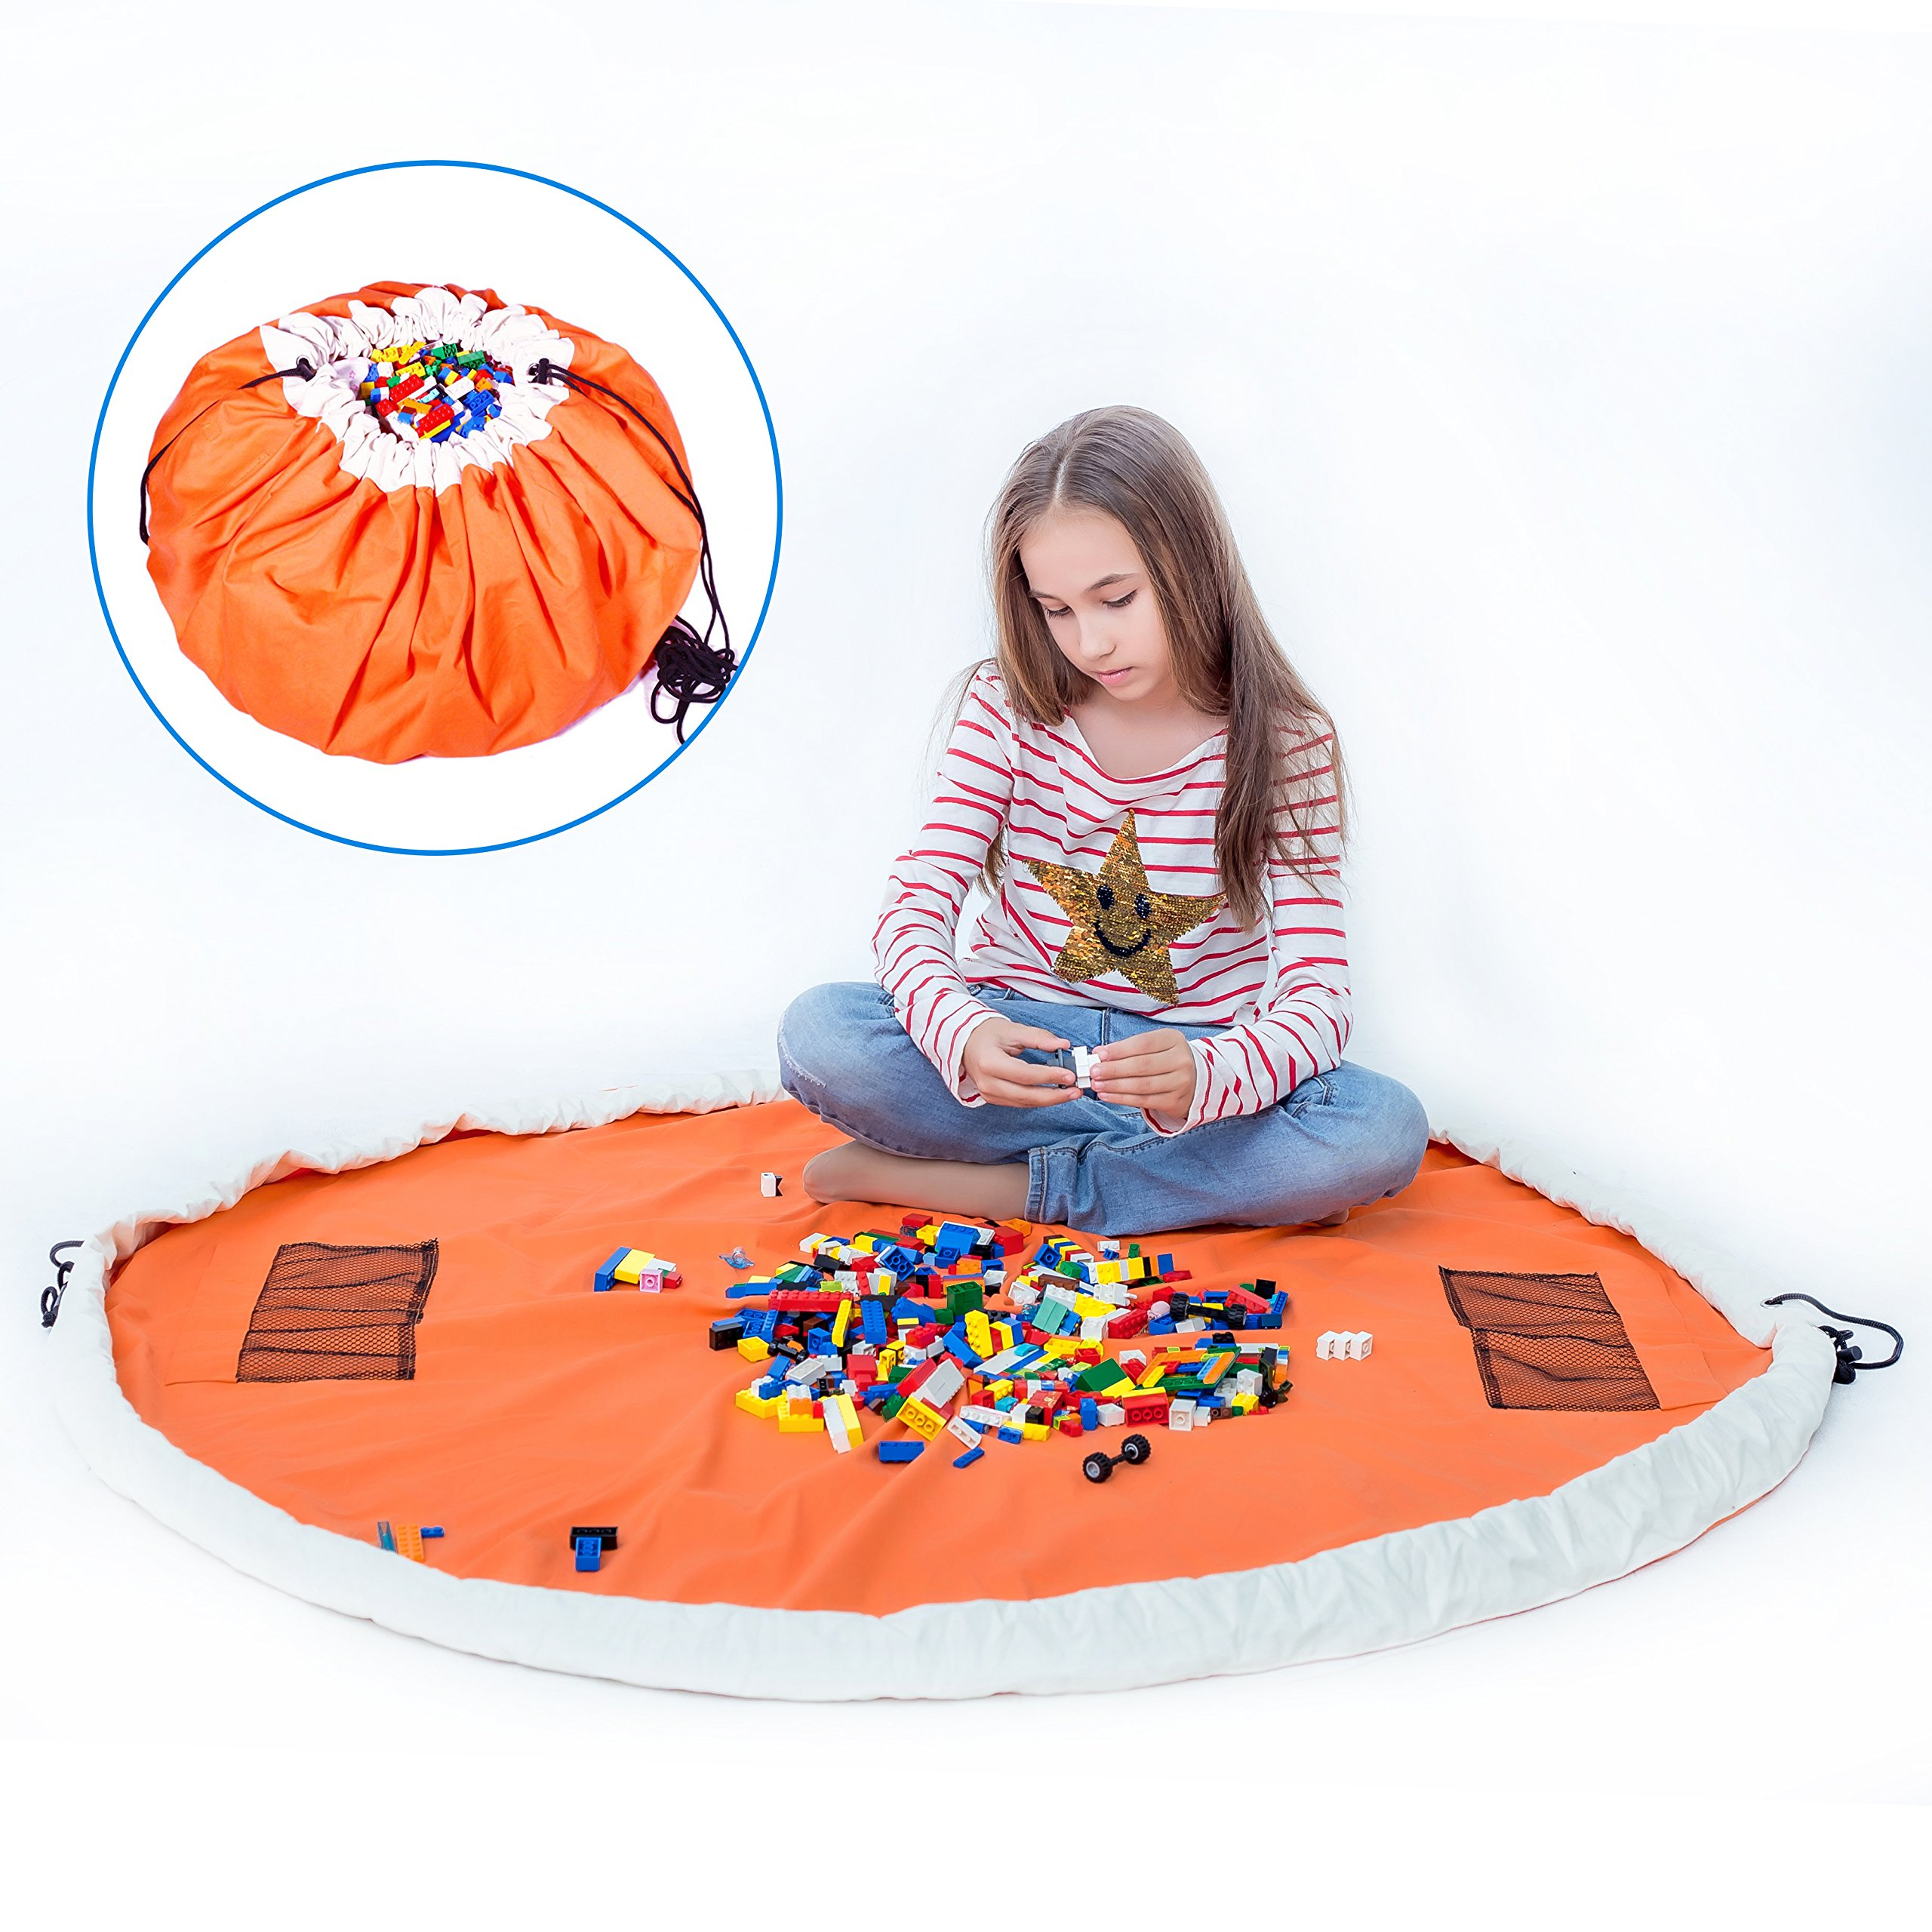 Play Mat Bag 2 in 1 – Durable100% Cotton Canvas 60inch (Orange) Large Play Mat and Storage Bag Drawstring for Lego/Magnetic Building/Blocks Convenient Fast Neat Portable